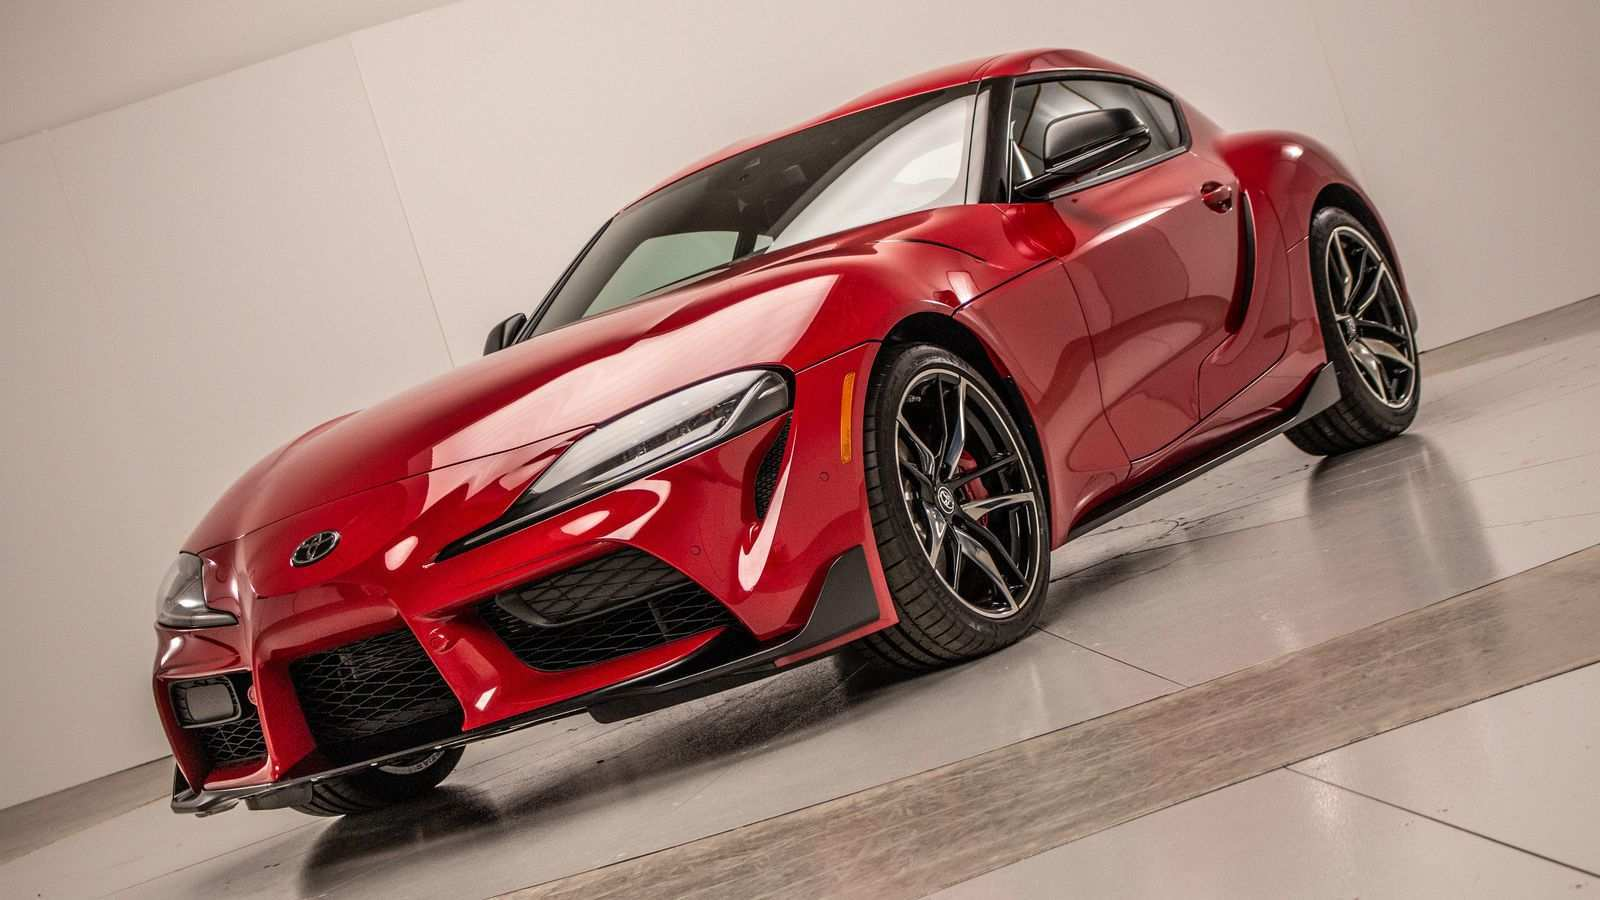 30 Gallery of 2020 Toyota Supra Price with 2020 Toyota Supra